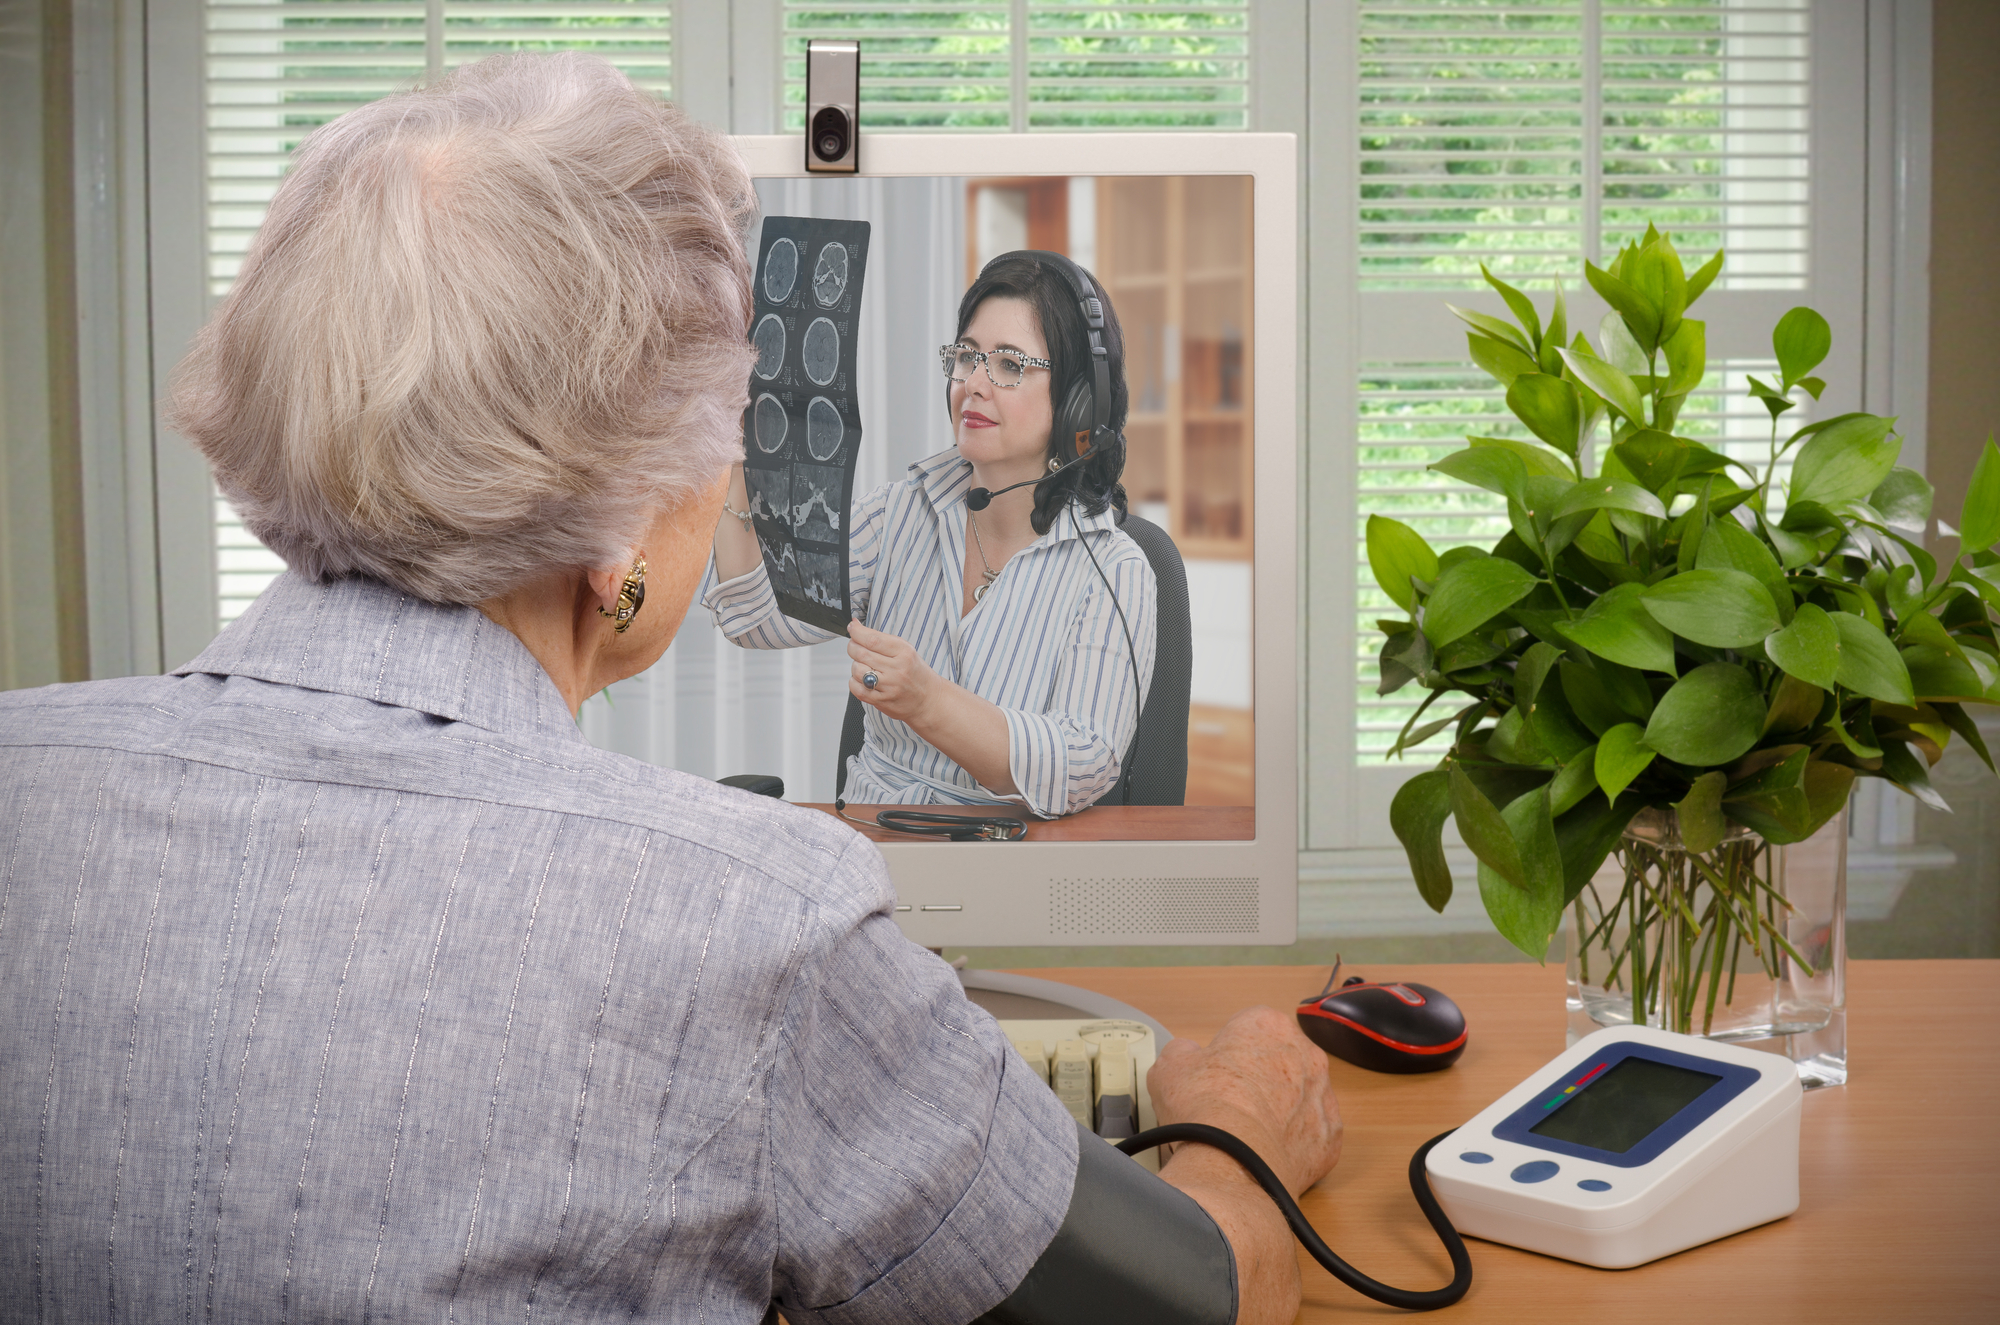 senior woman and doctor having teledentistry visit